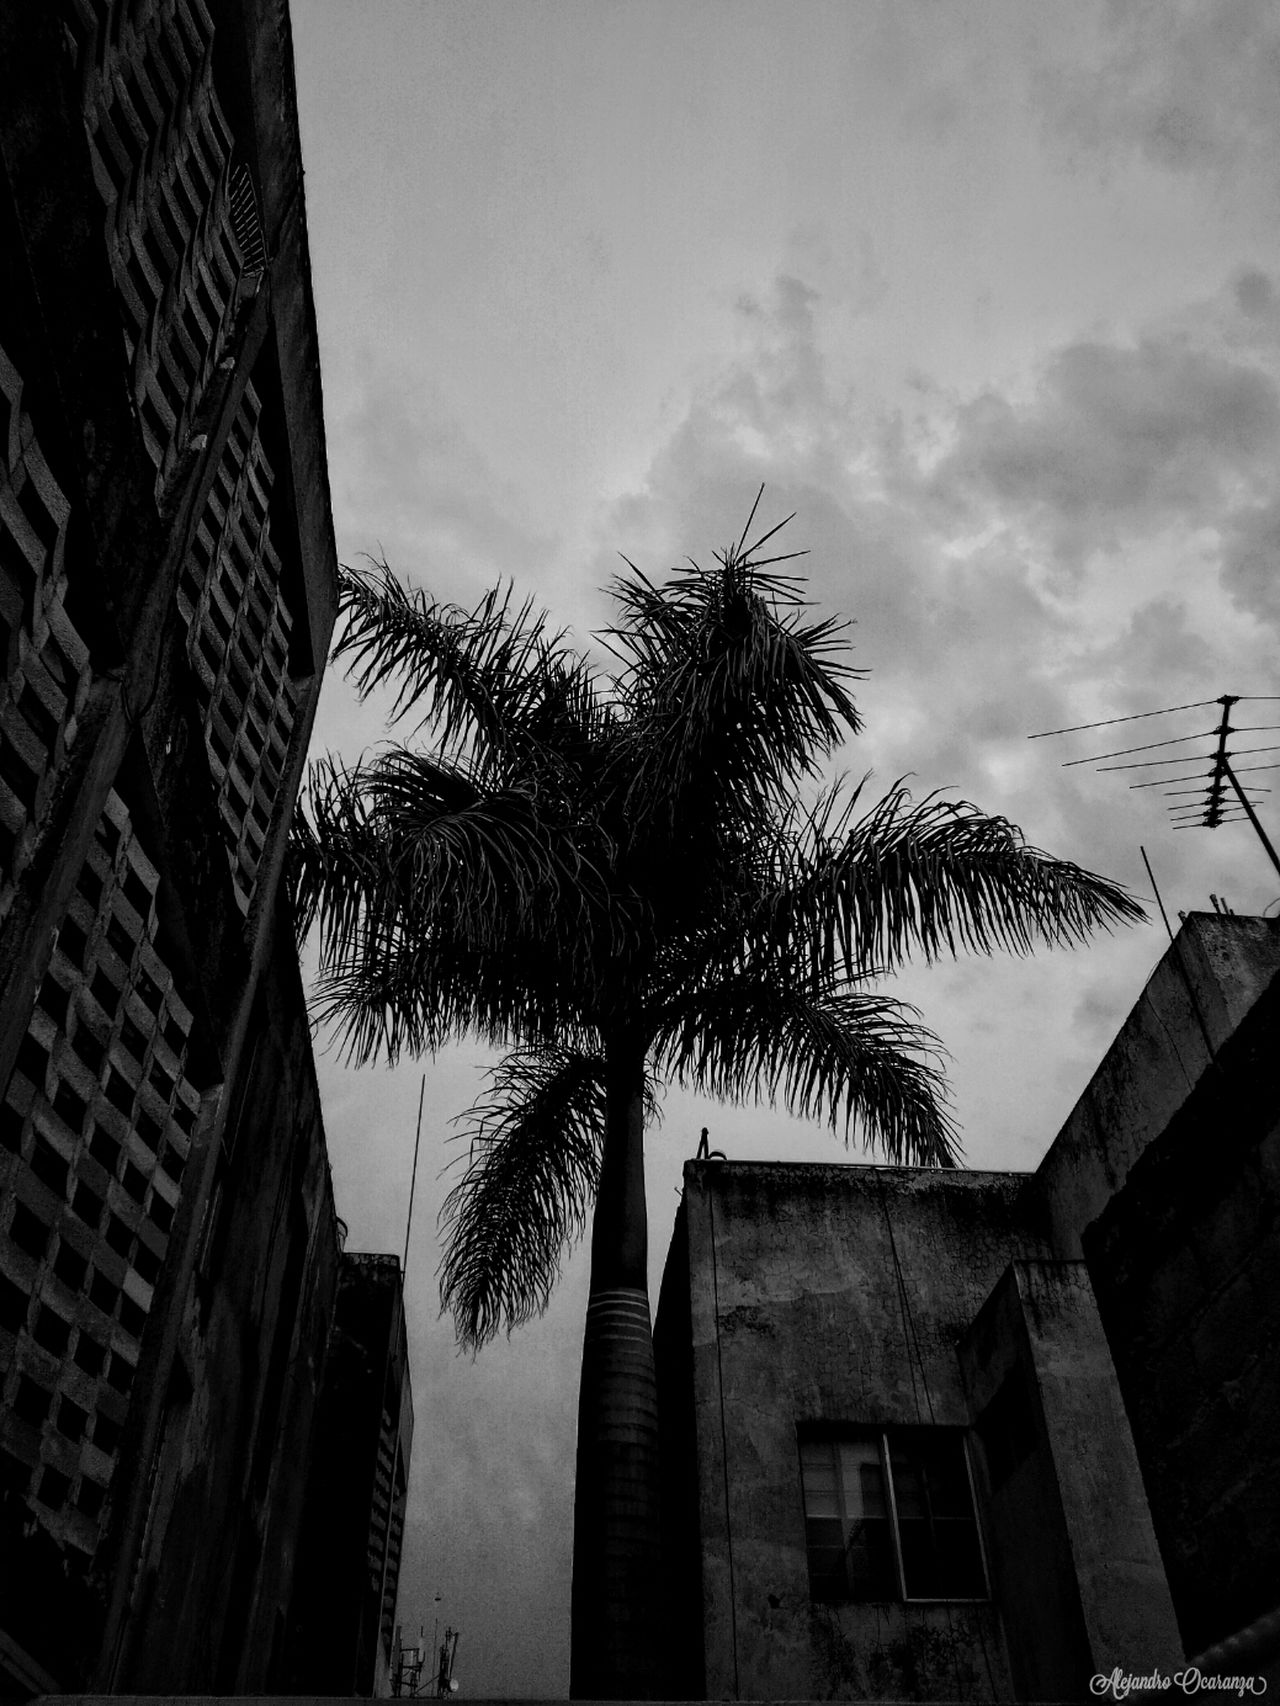 Al Final del Dia Nightphotography Shadow Black & White Blackandwhitephotography Blsckandwhite Blake_and_white City Black And White Photography Nature Day Close-up No People Beauty In Nature Illuminated Photographie  First Eyeem Photo Photo Guadalajara Mexico Photography Photographer Guadalajara Jalisco Photos Plant Sky